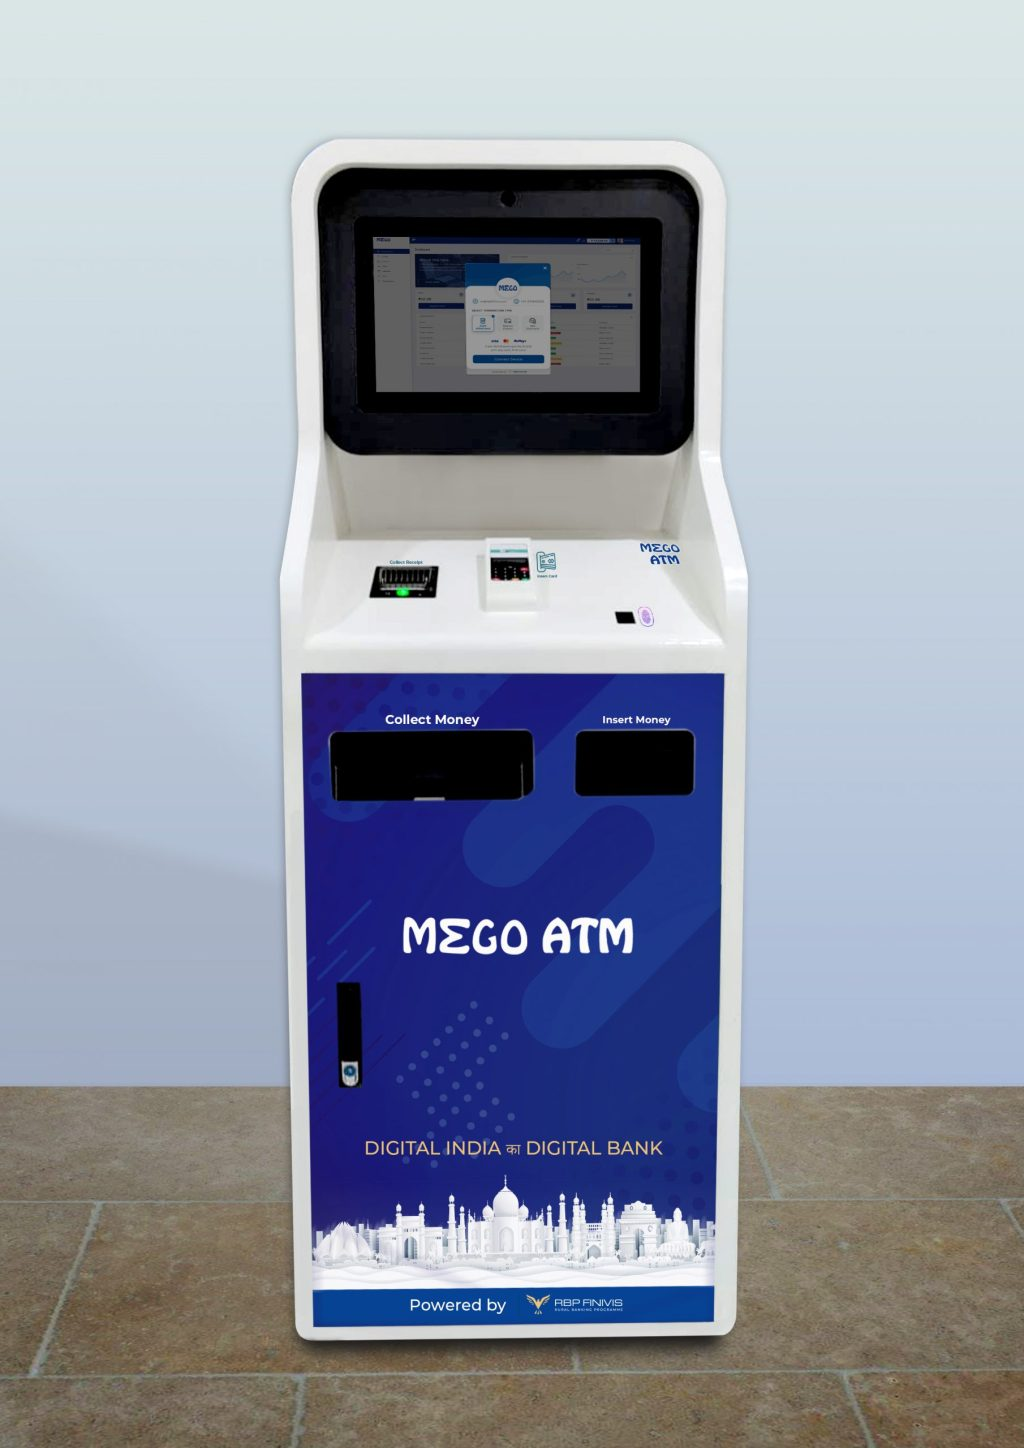 RBP Finivis extends its rural banking services with the launch of Mego ATM